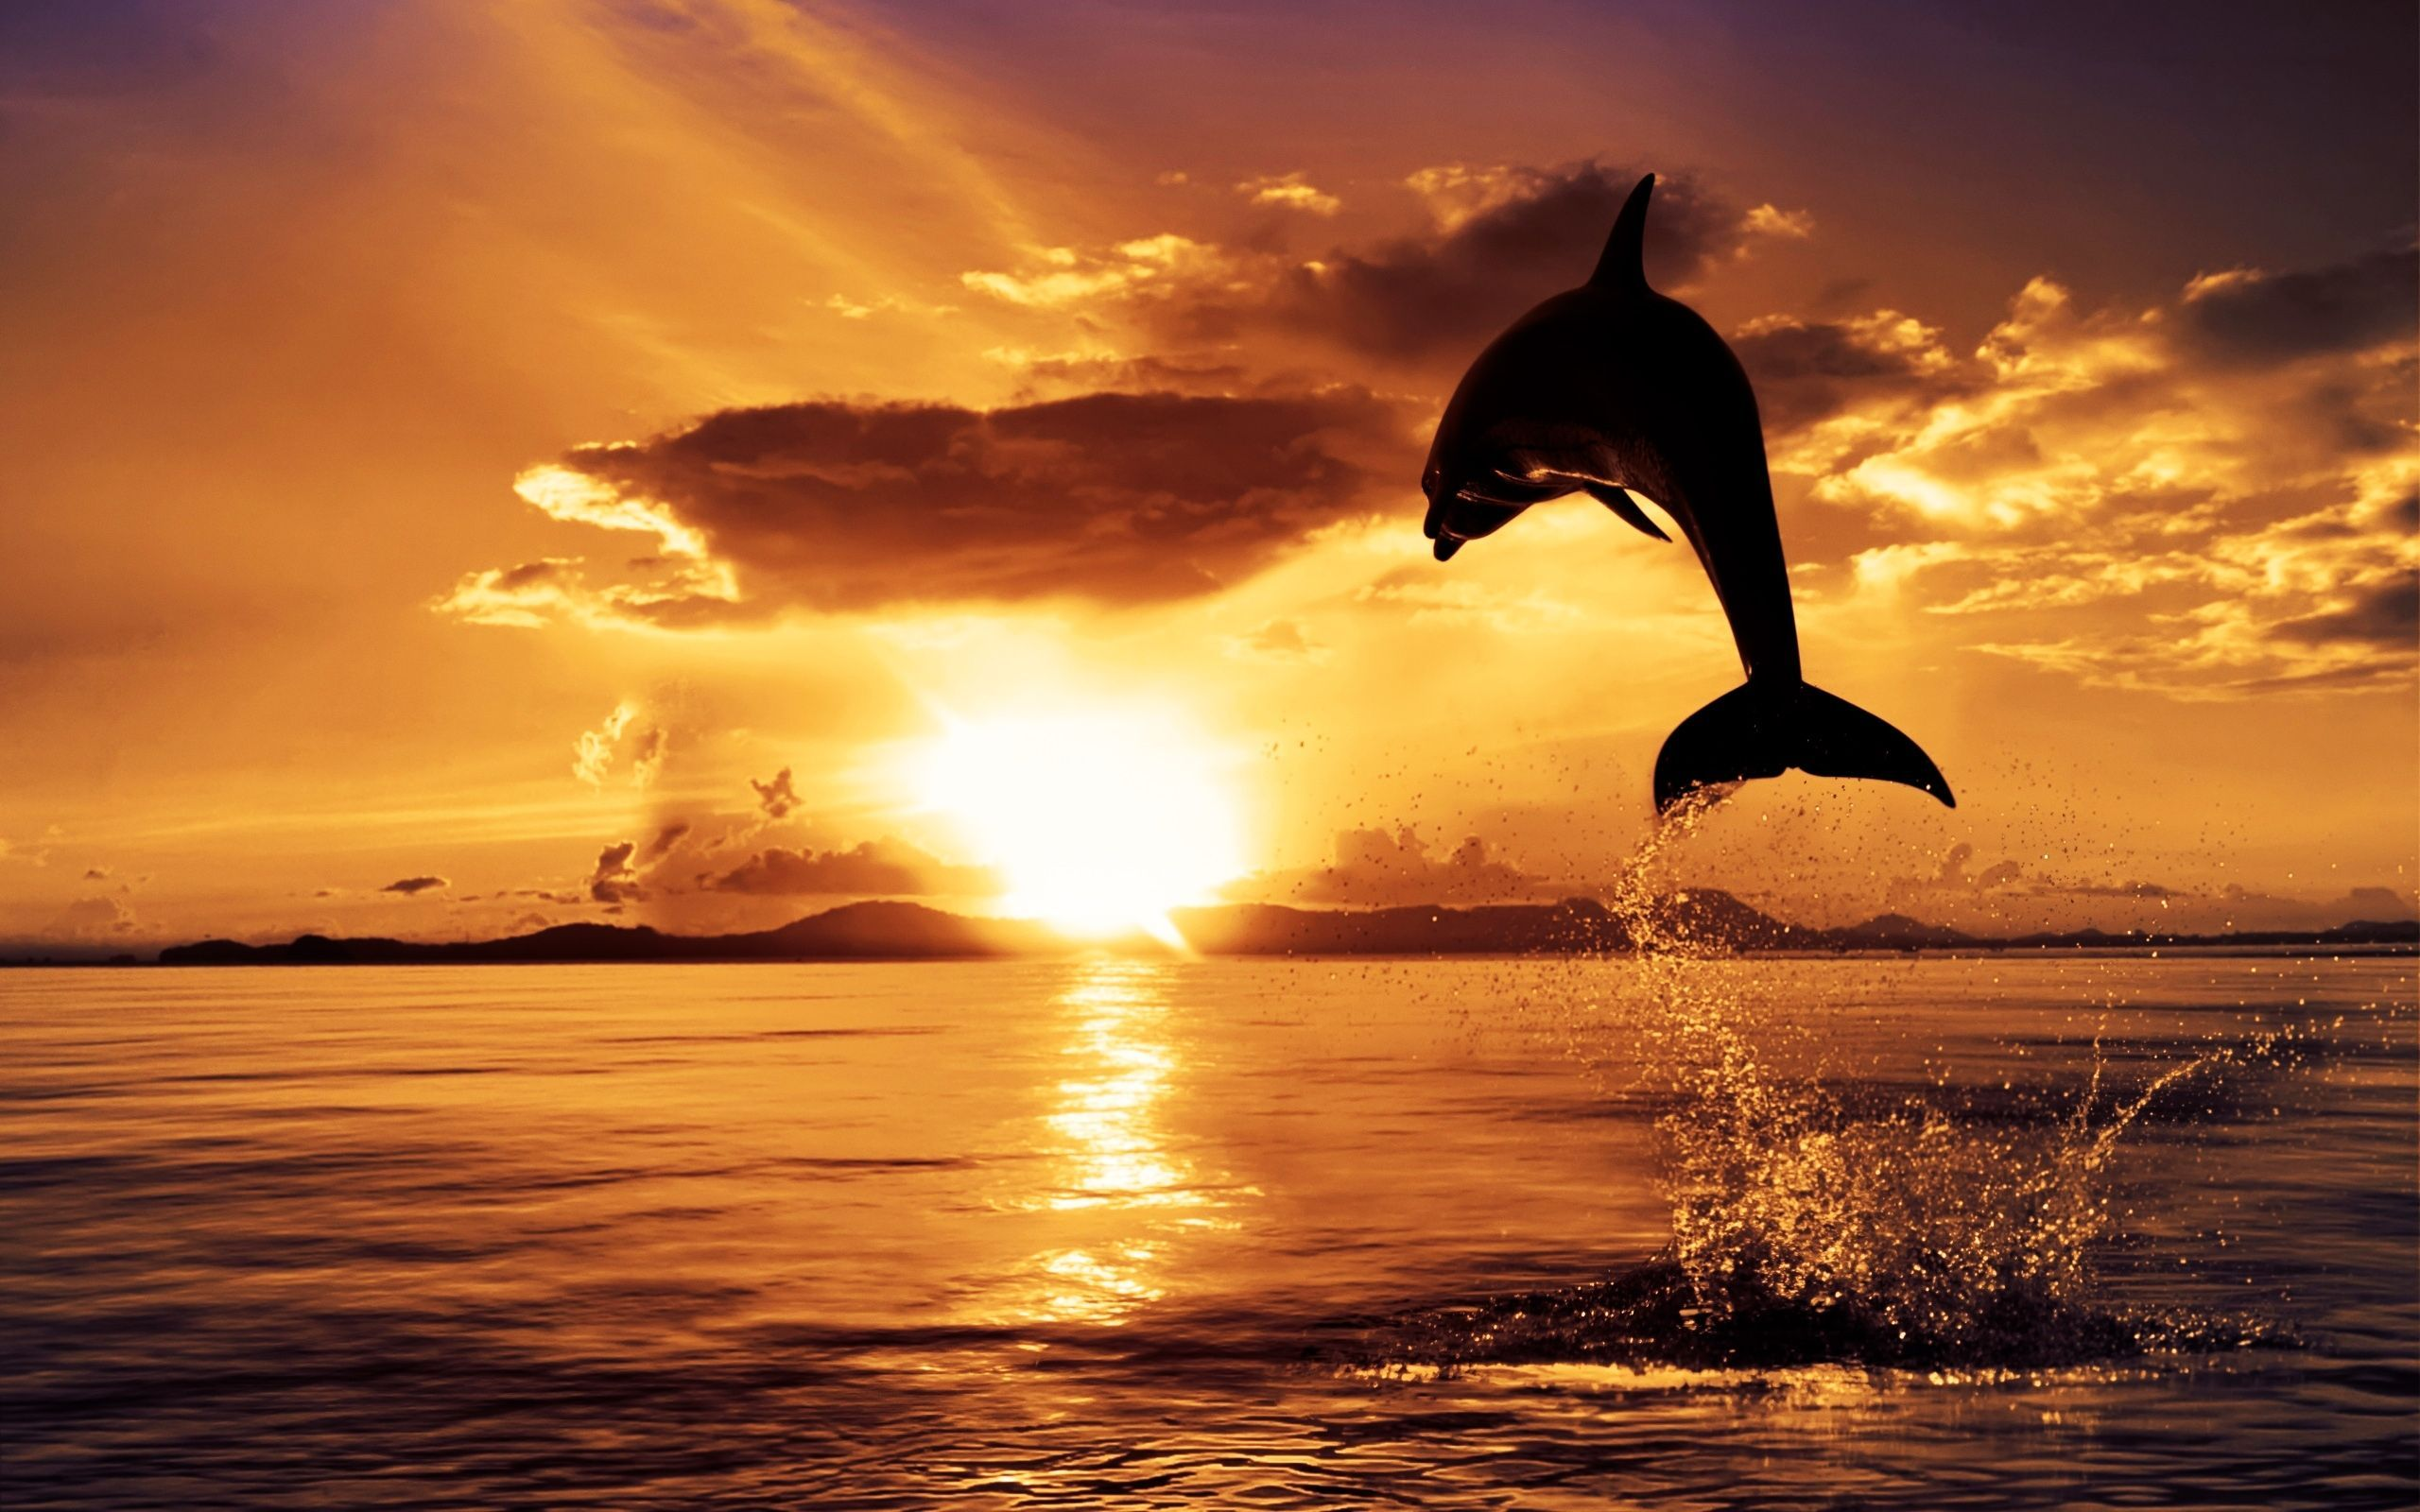 Dolphin Sunset HD Wallpaper Nature Wallpapers 2560x1600